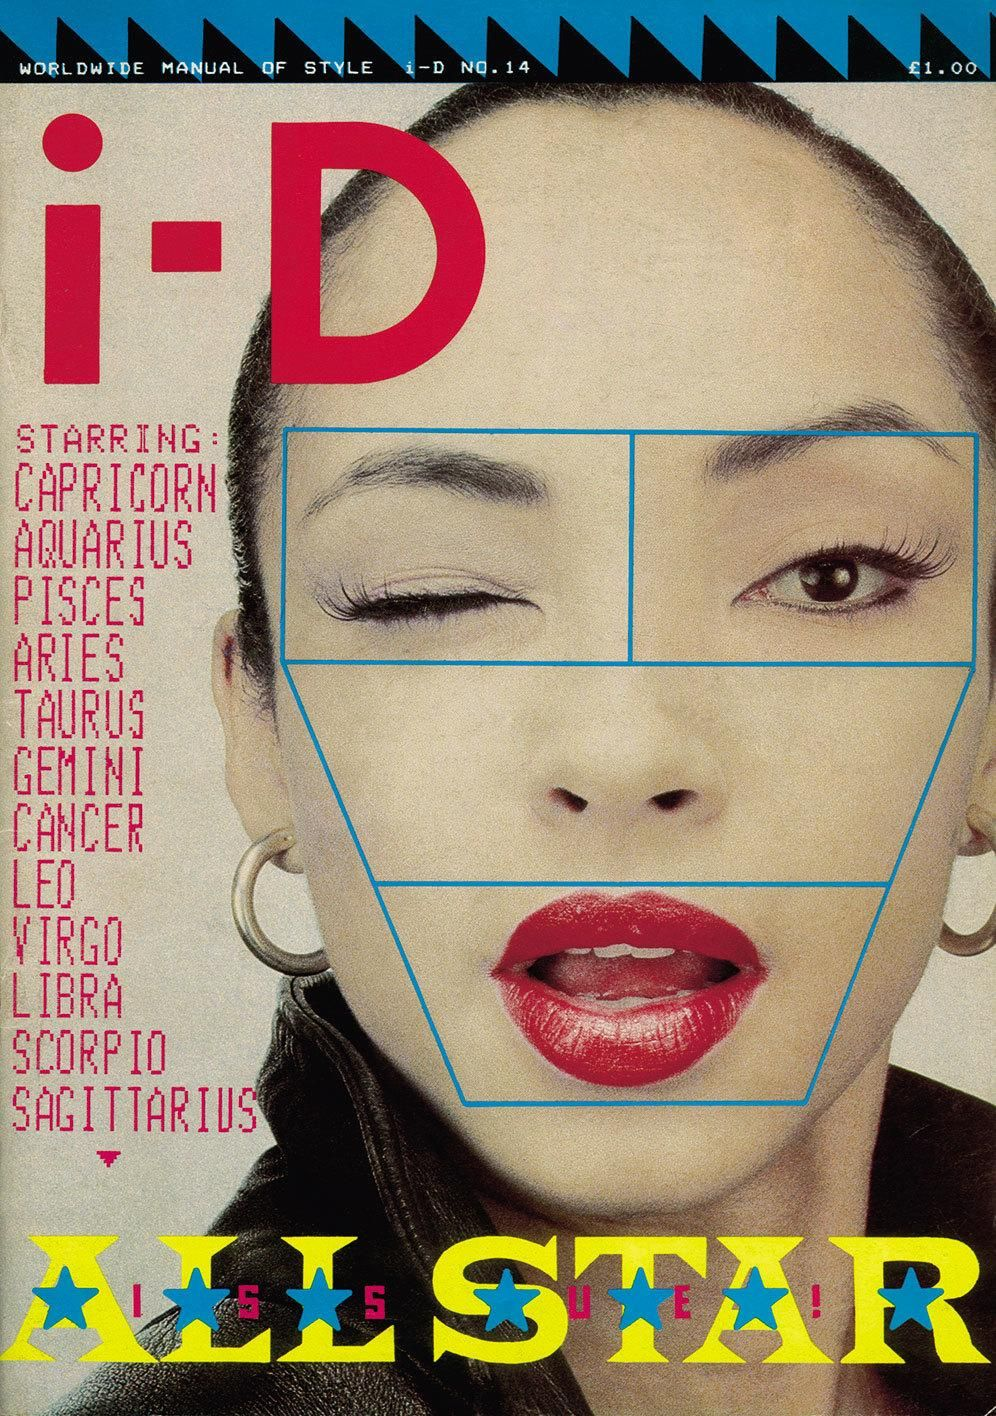 Sade by Nick Knight on the cover of i-D (April 1983) | Id magazine, Magazine cover, Music covers